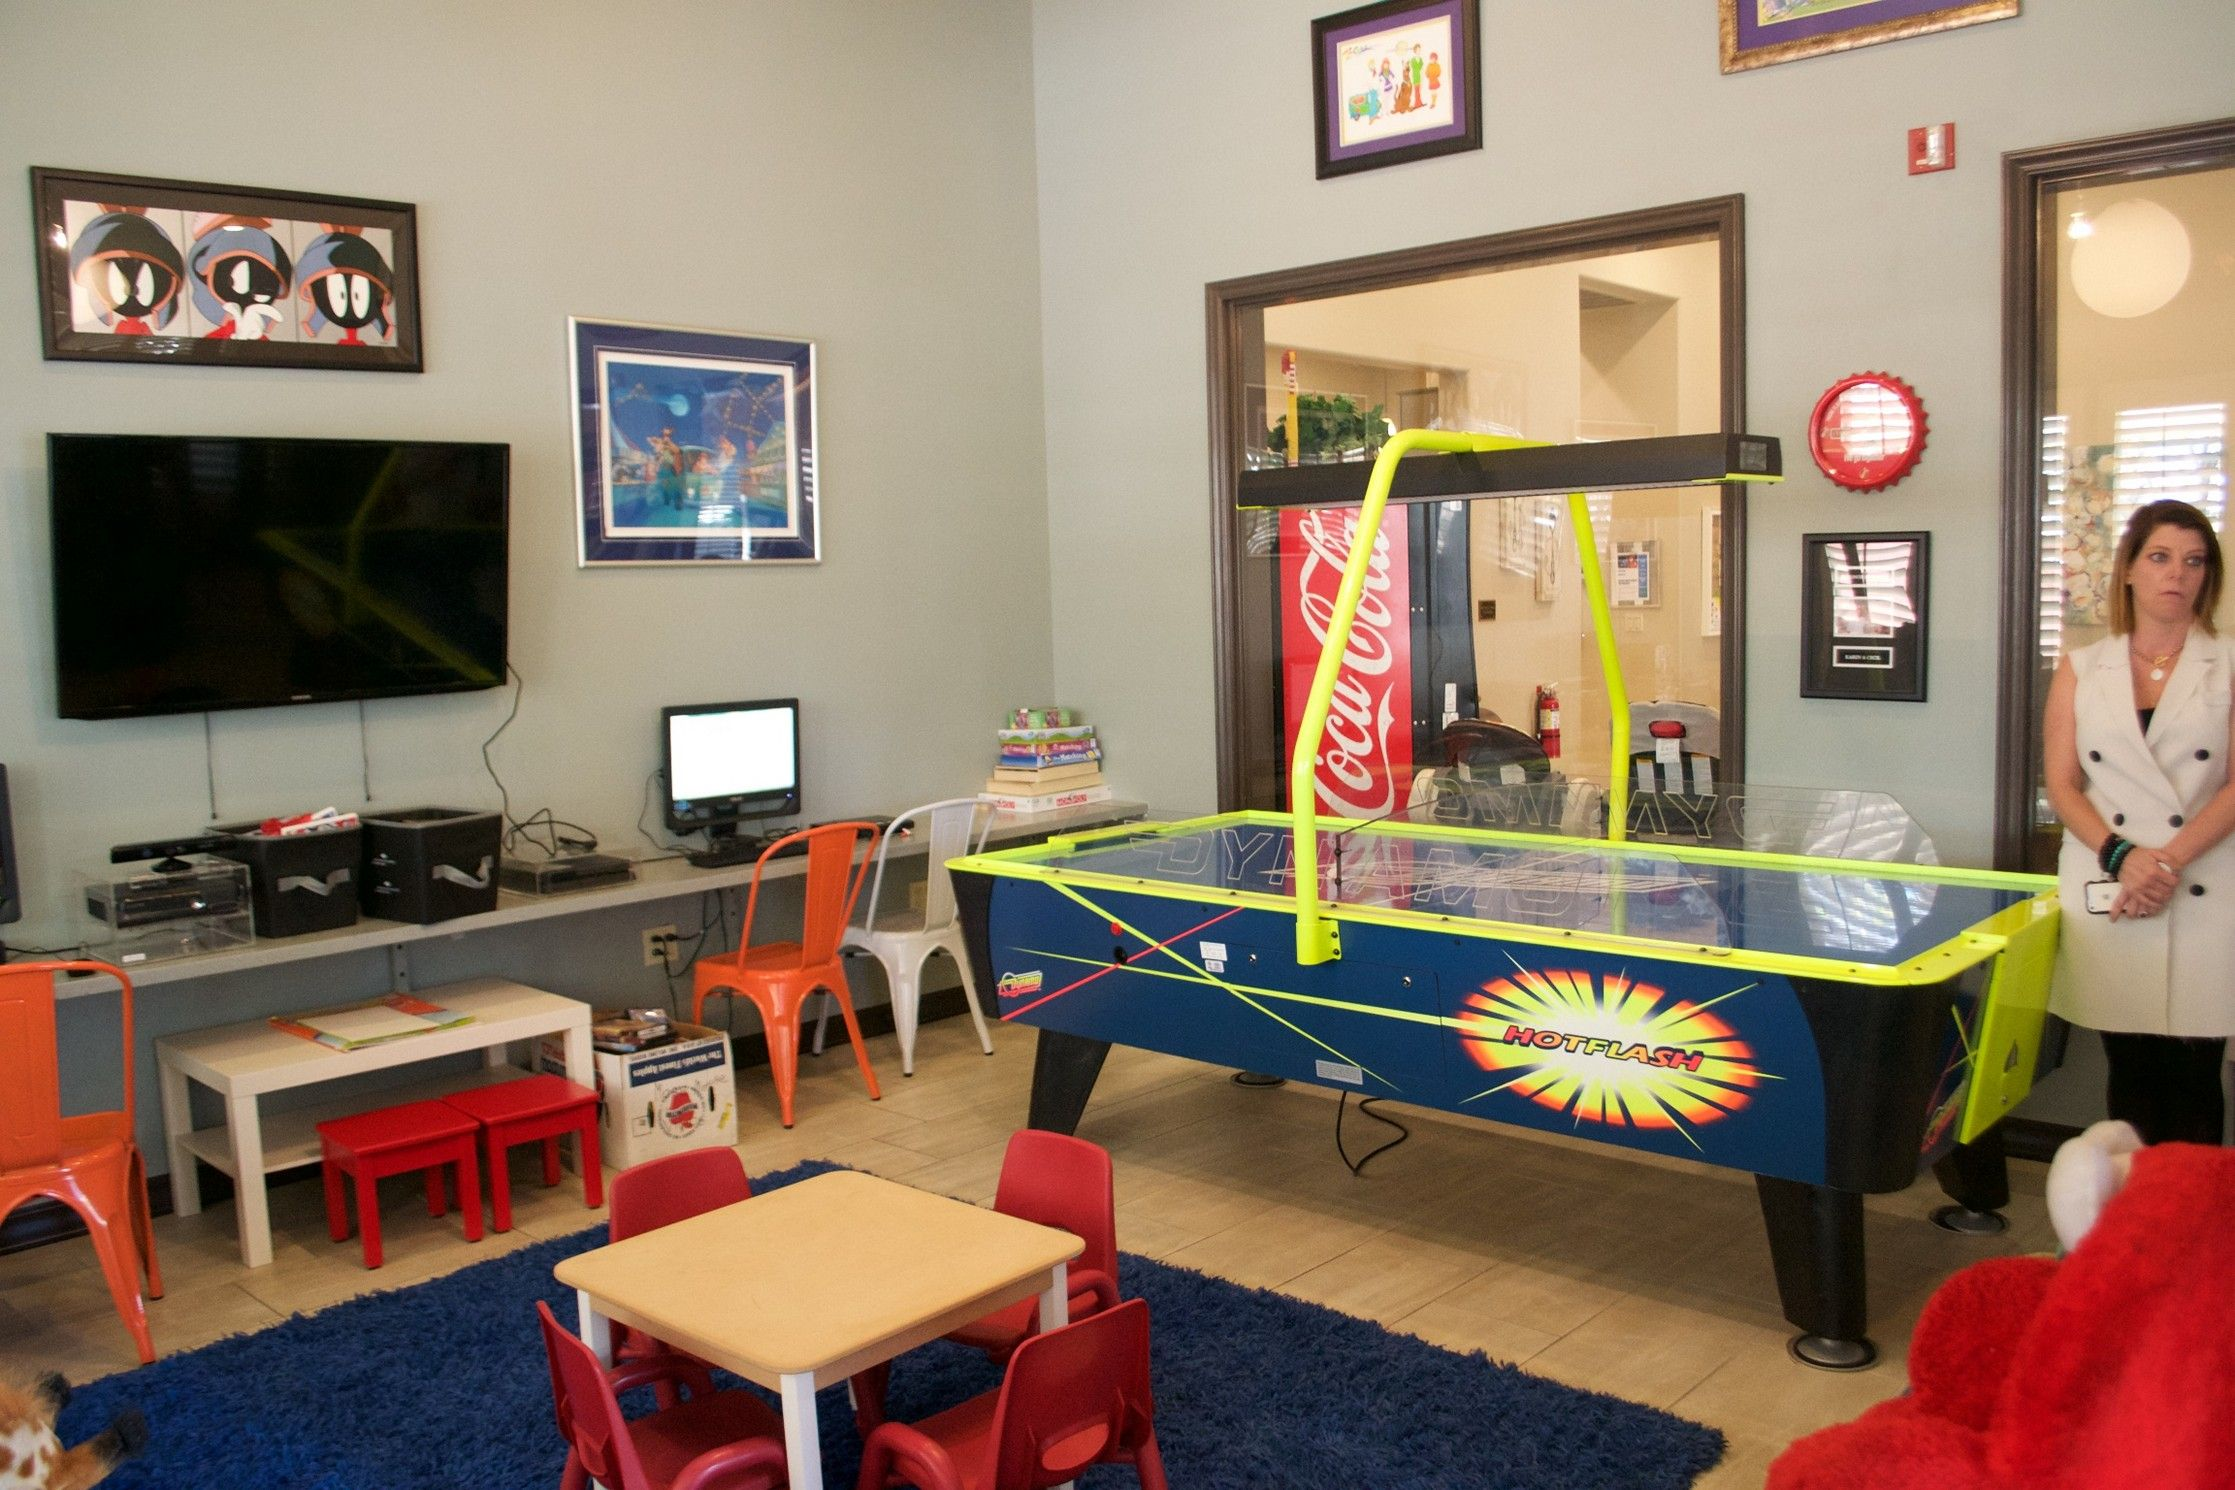 17 Most Popular Video Game Room Ideas Feel the Awesome Game Play